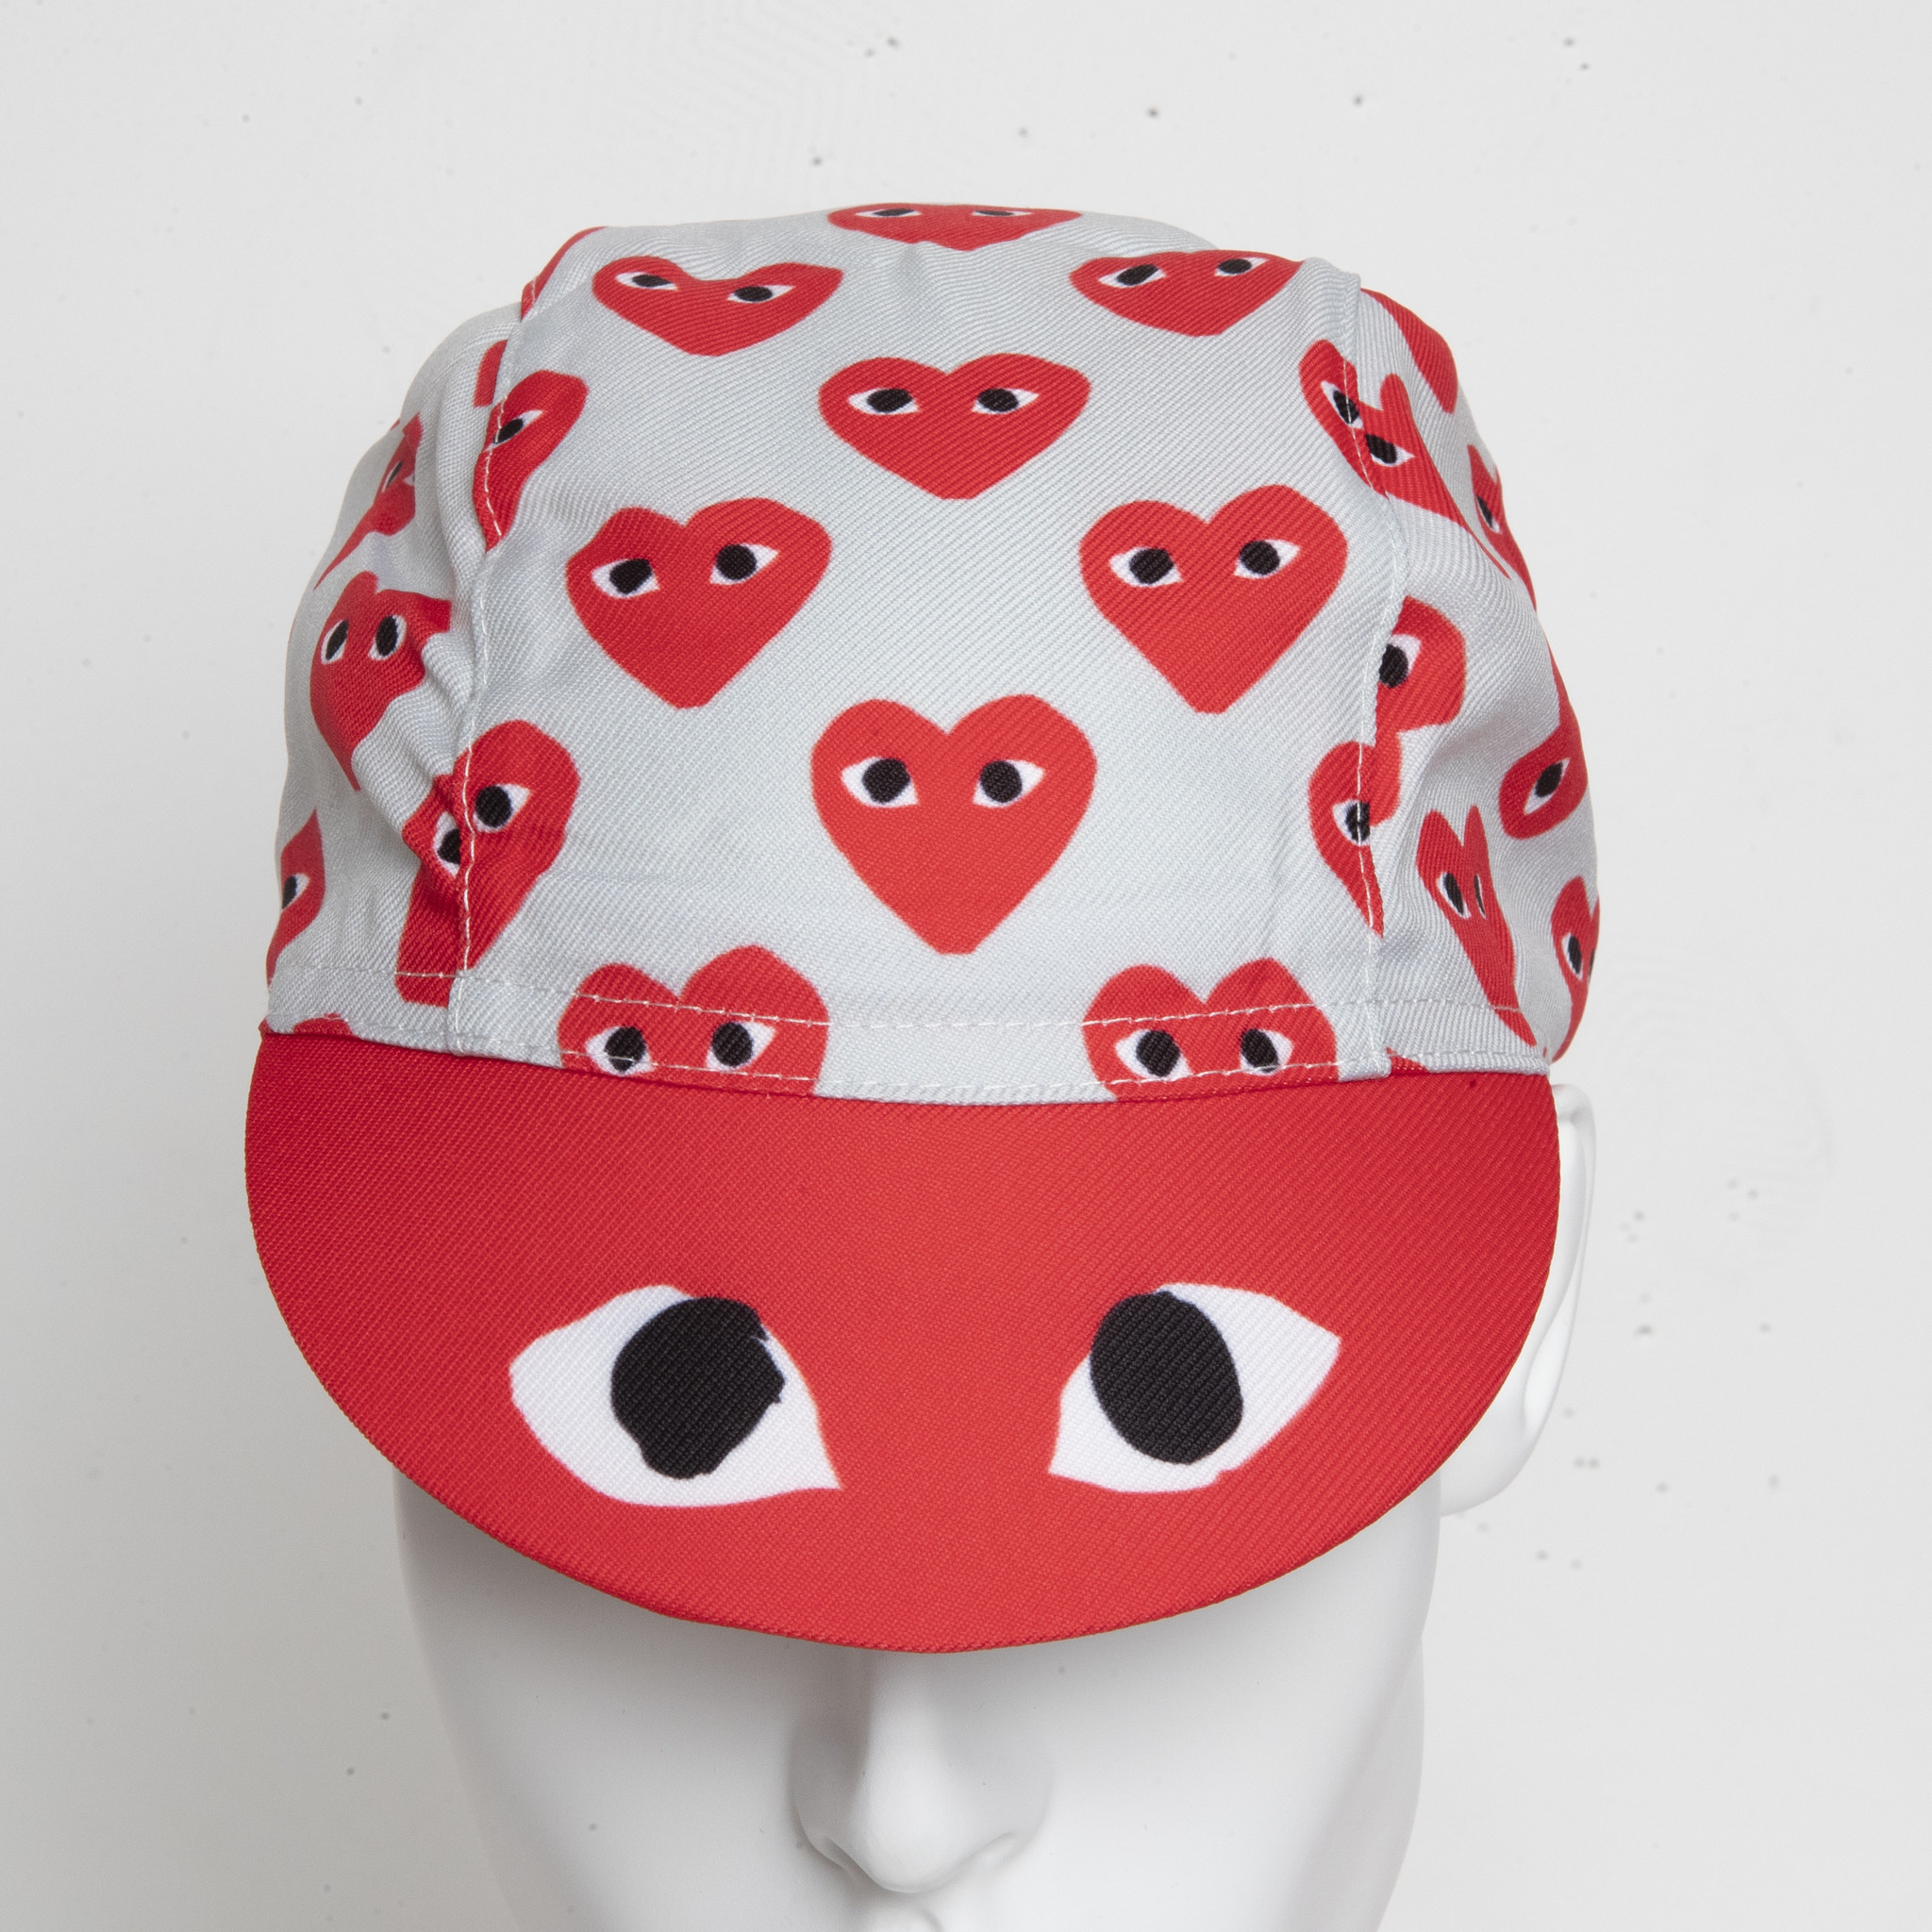 CDG Cycling Cap